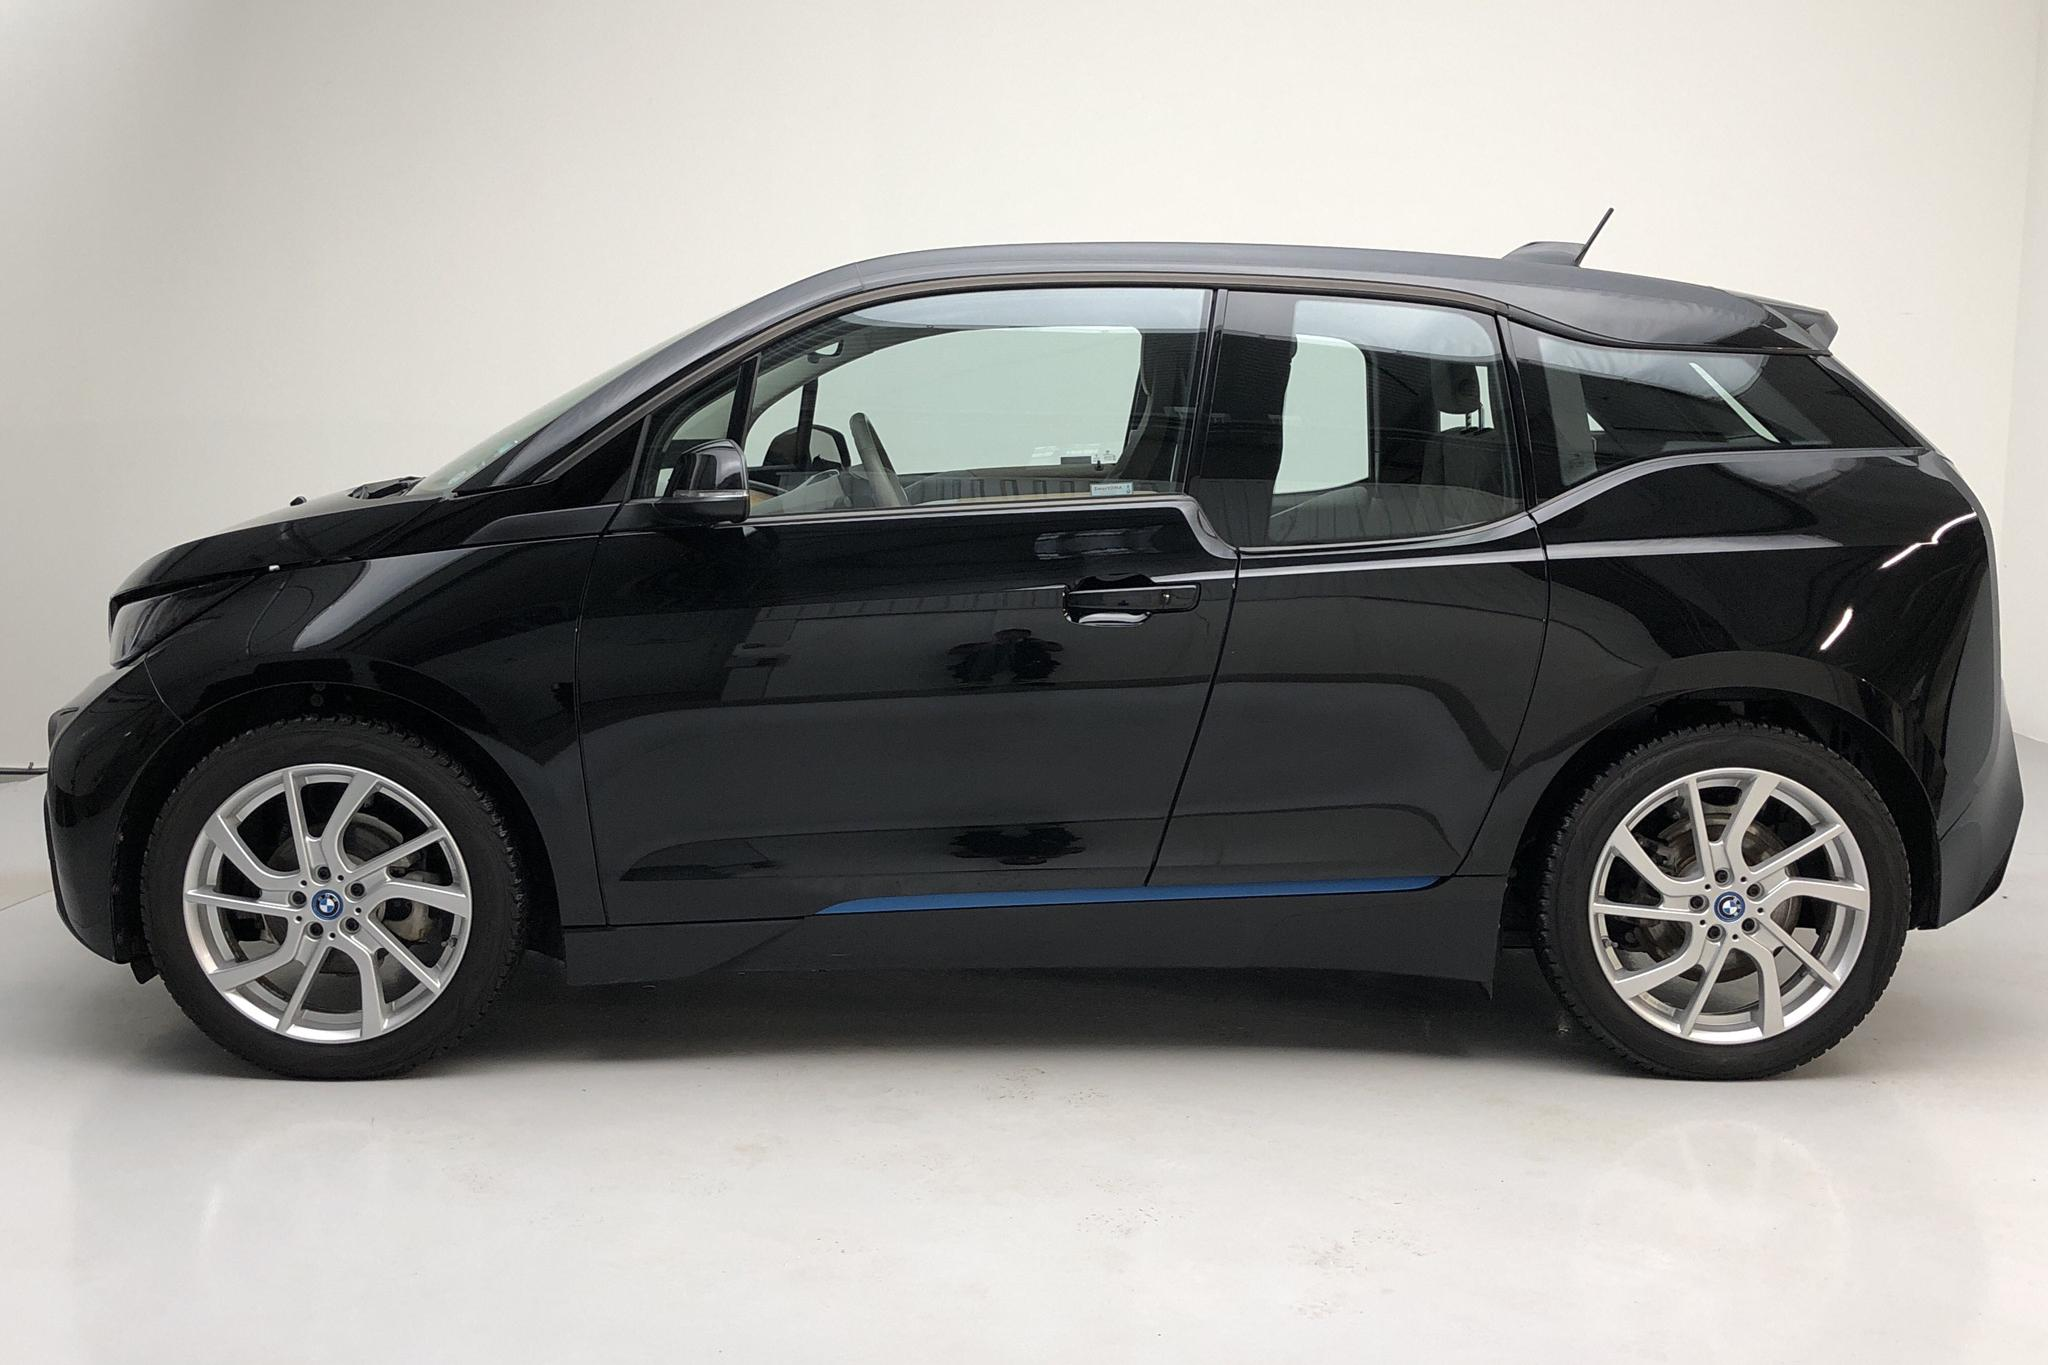 BMW i3 94Ah, I01 (170hk) - 26 750 km - Automatic - black - 2017